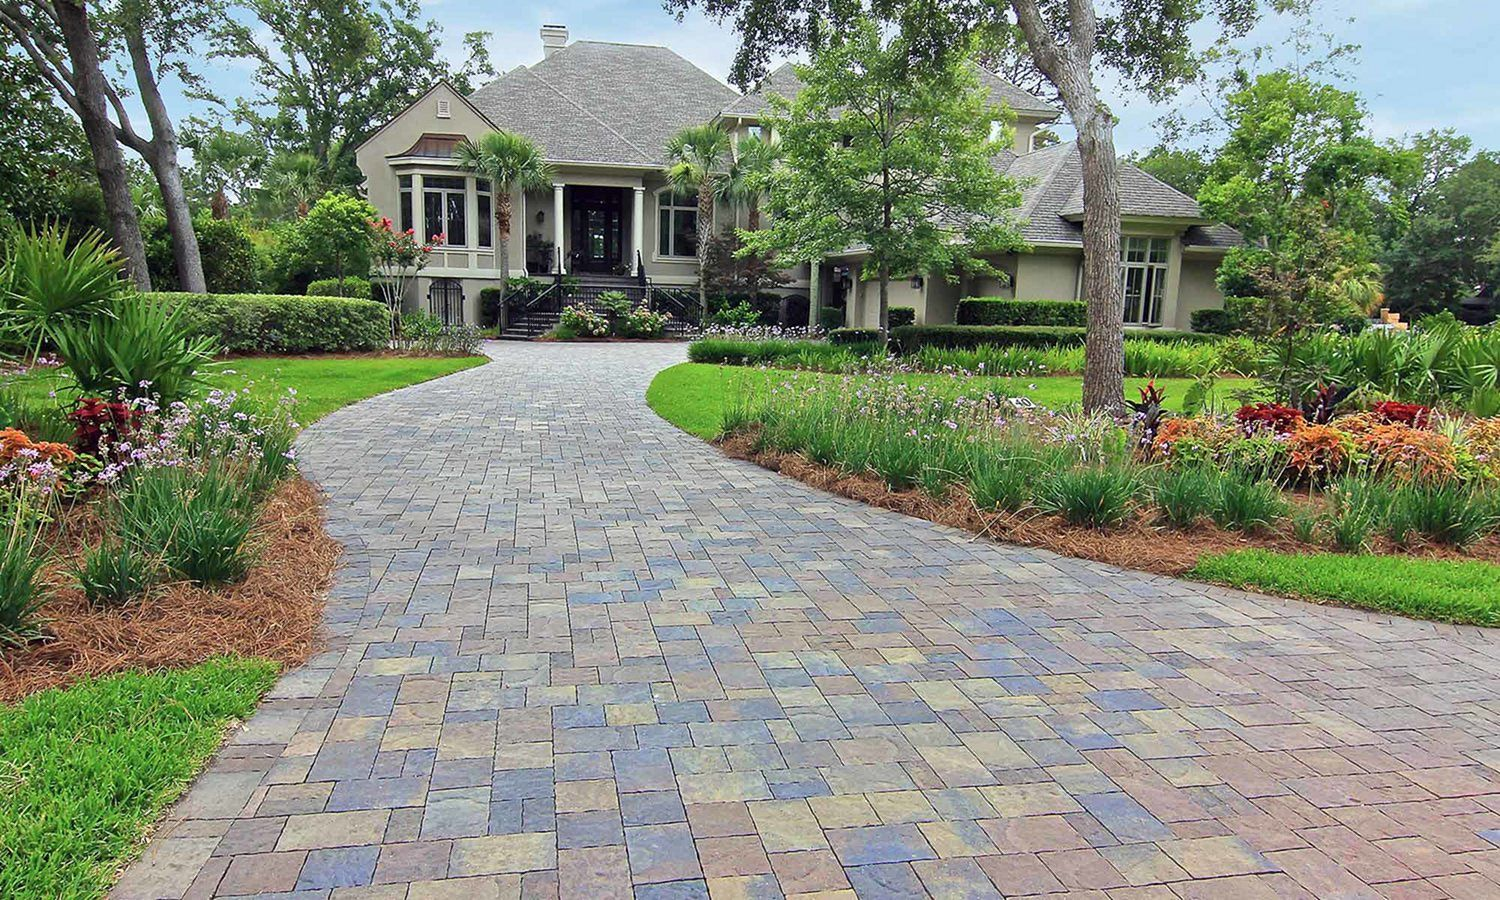 Why Do You Need To Install Concrete Driveway Pavers